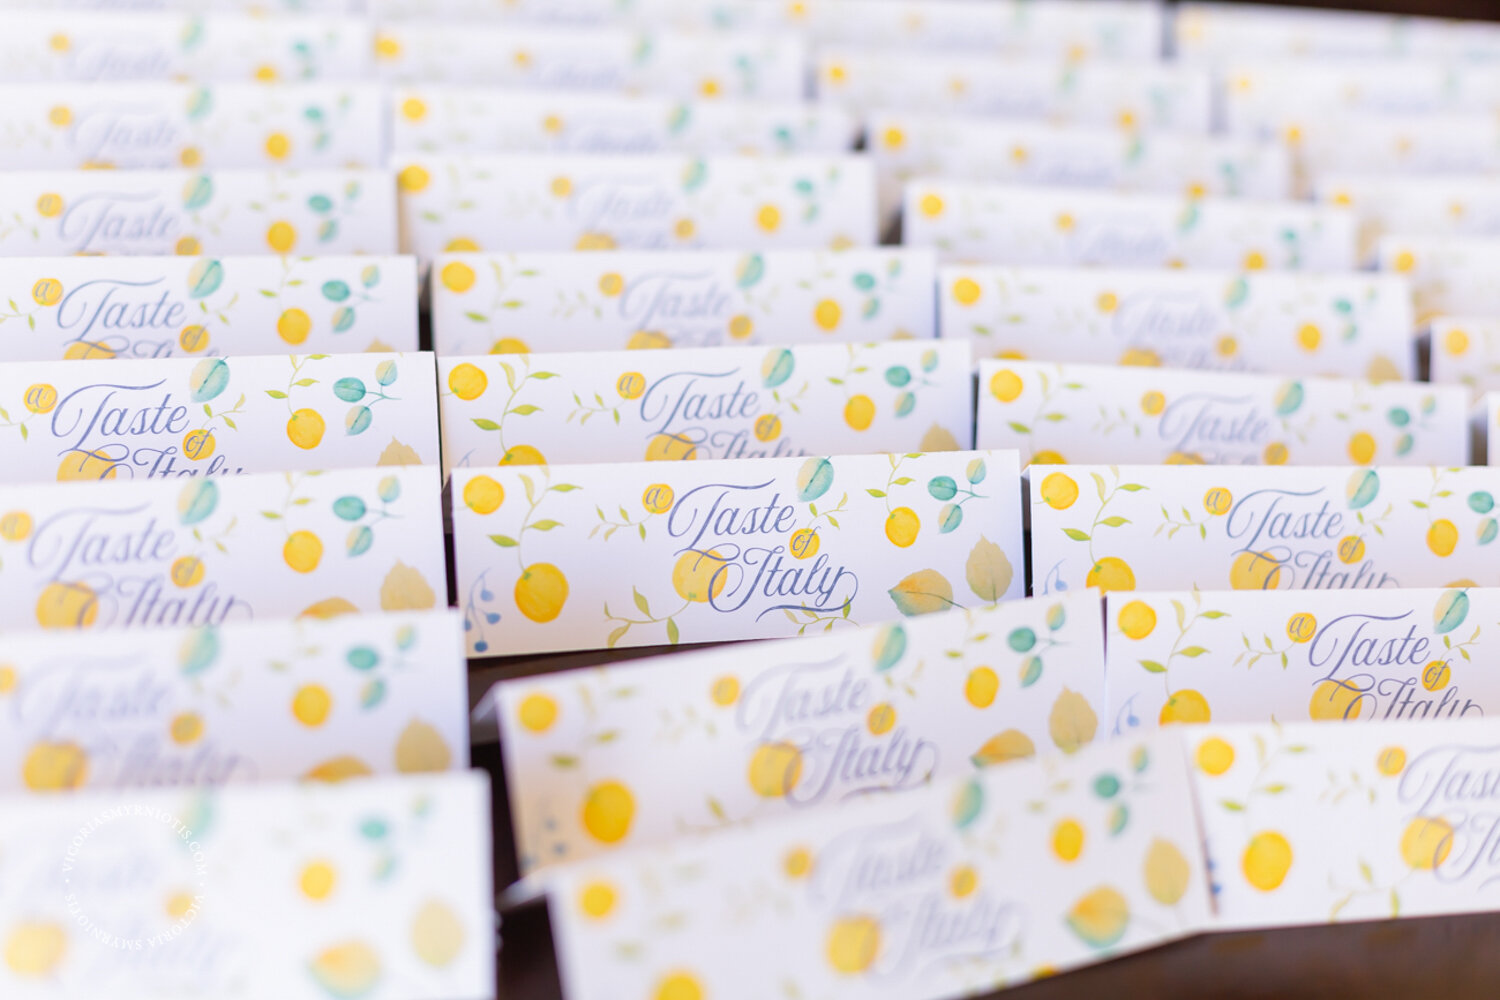 Cookie Tag Packaging by Victoria Smyrniotis